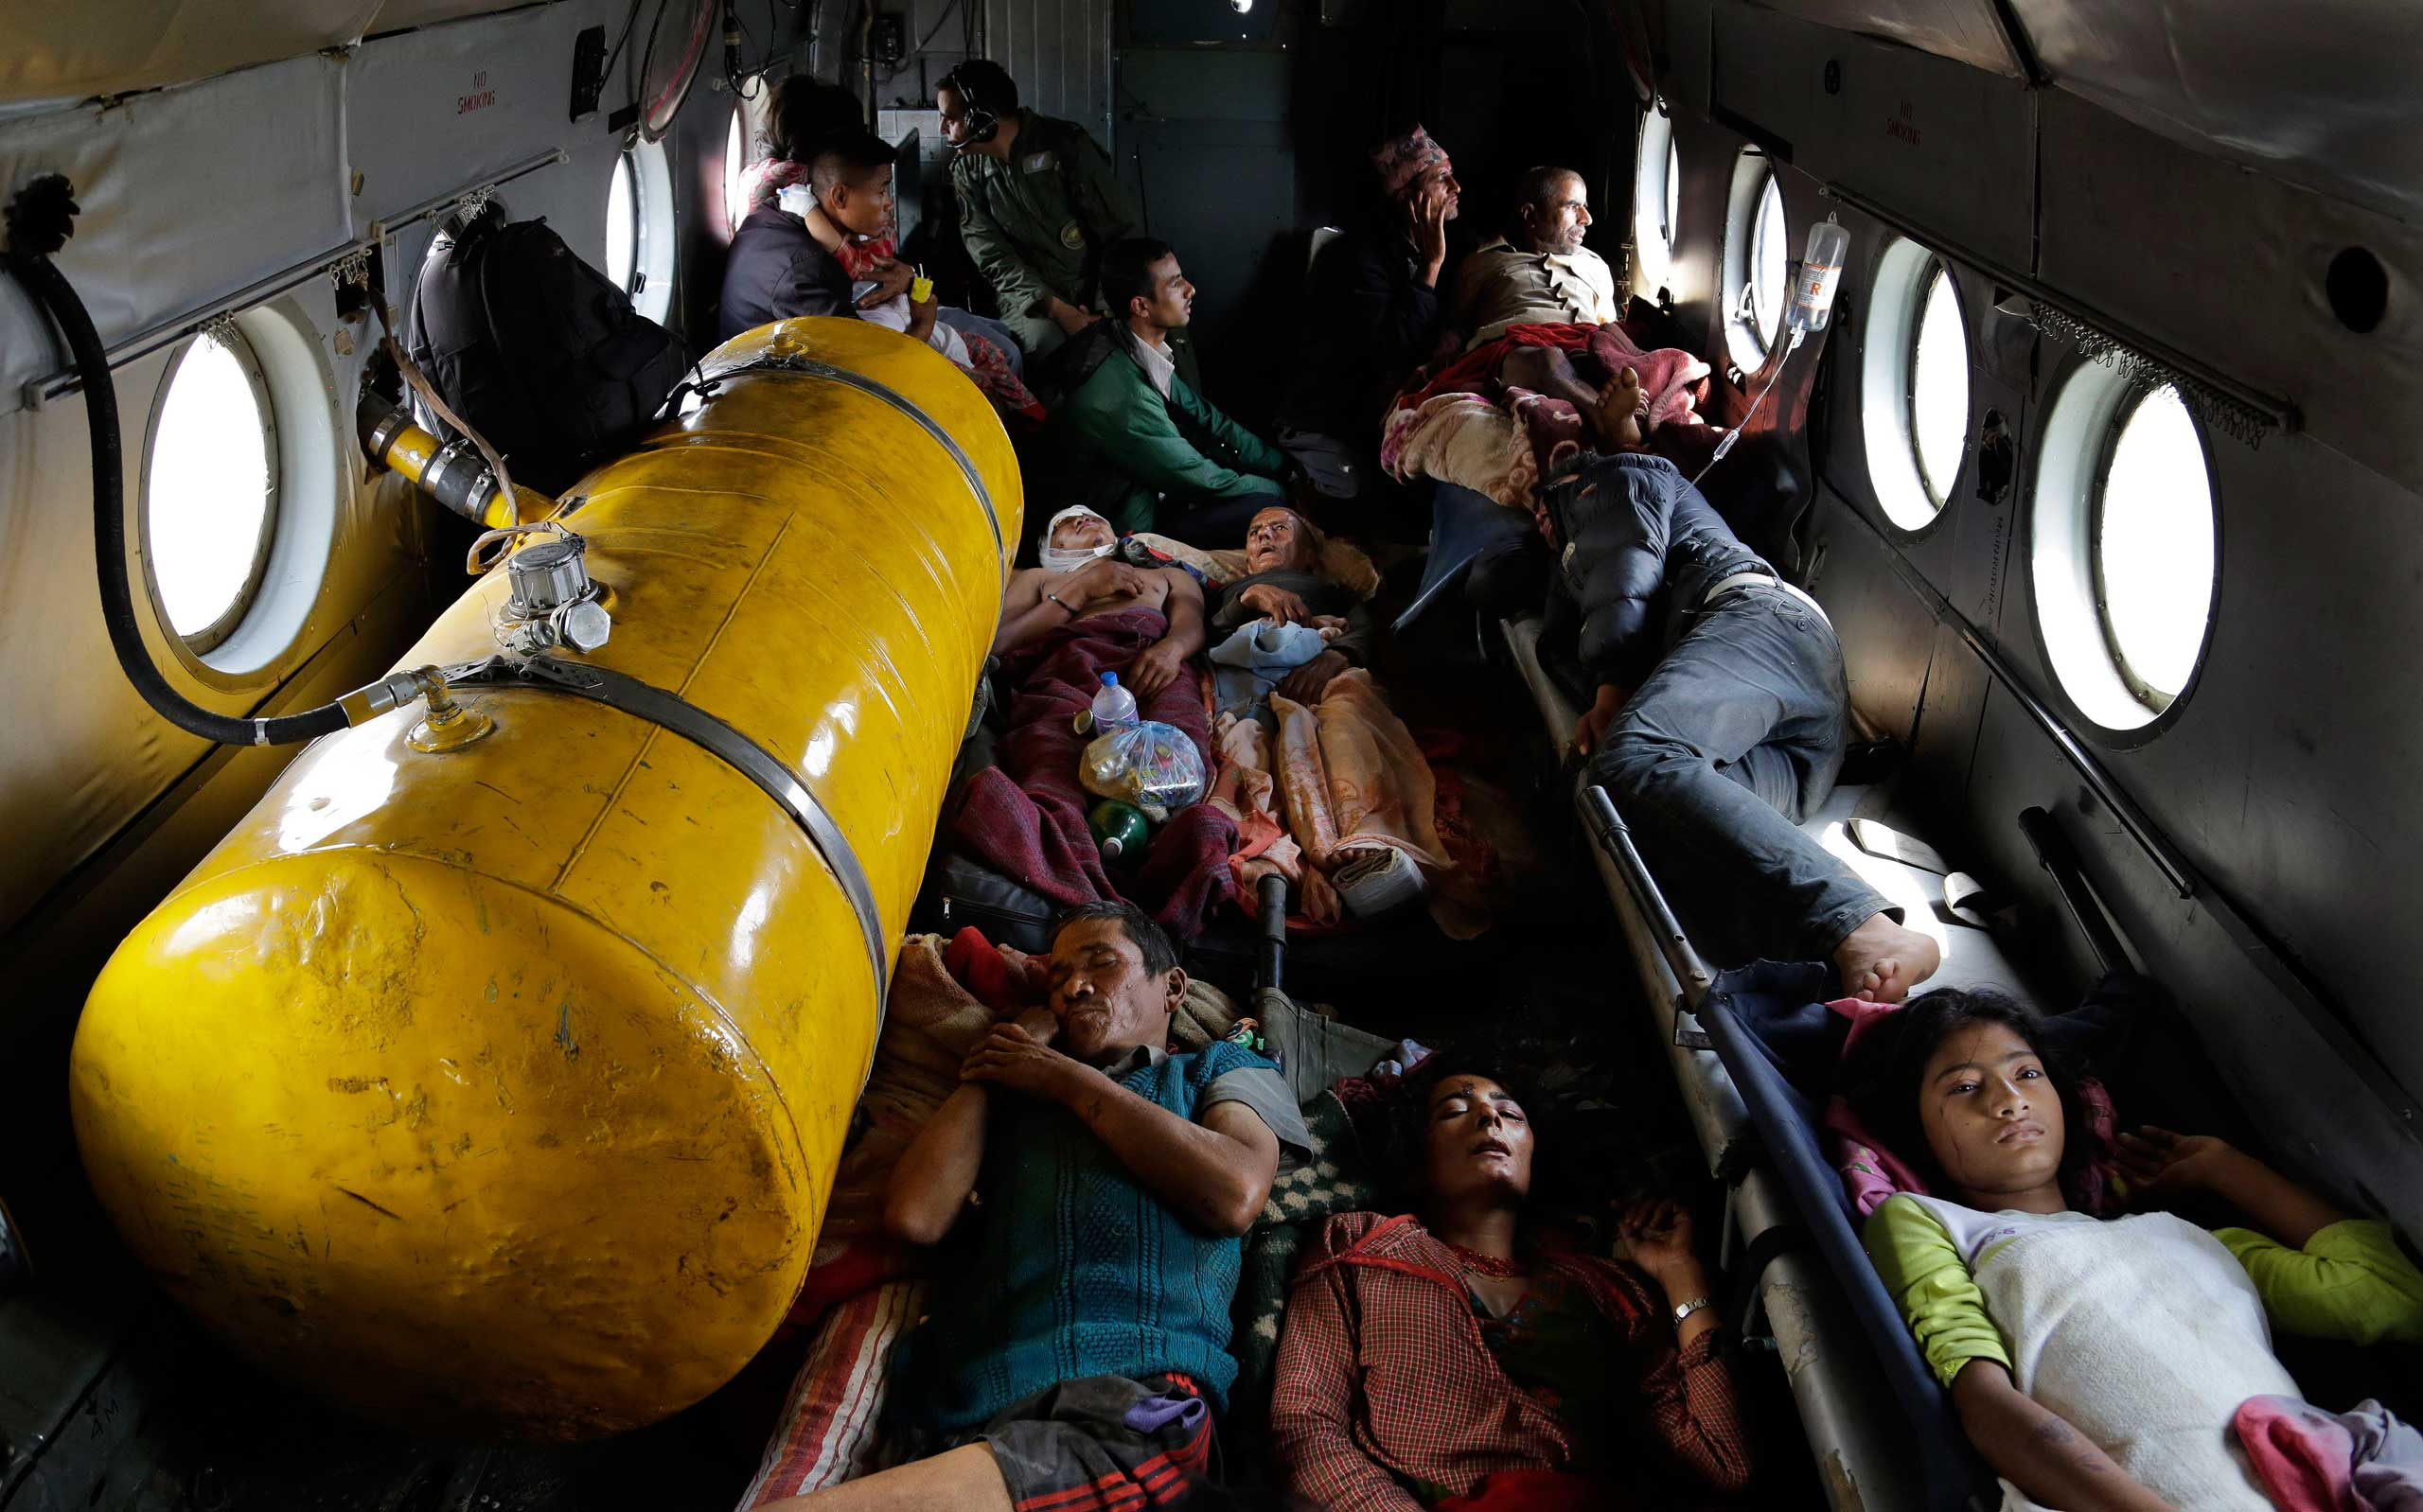 Nepalese victims of Saturday's earthquake lie inside an Indian Air Force helicopter as they are evacuated from Trishuli Bazar to Kathmandu airport in Nepal on April 27, 2015.